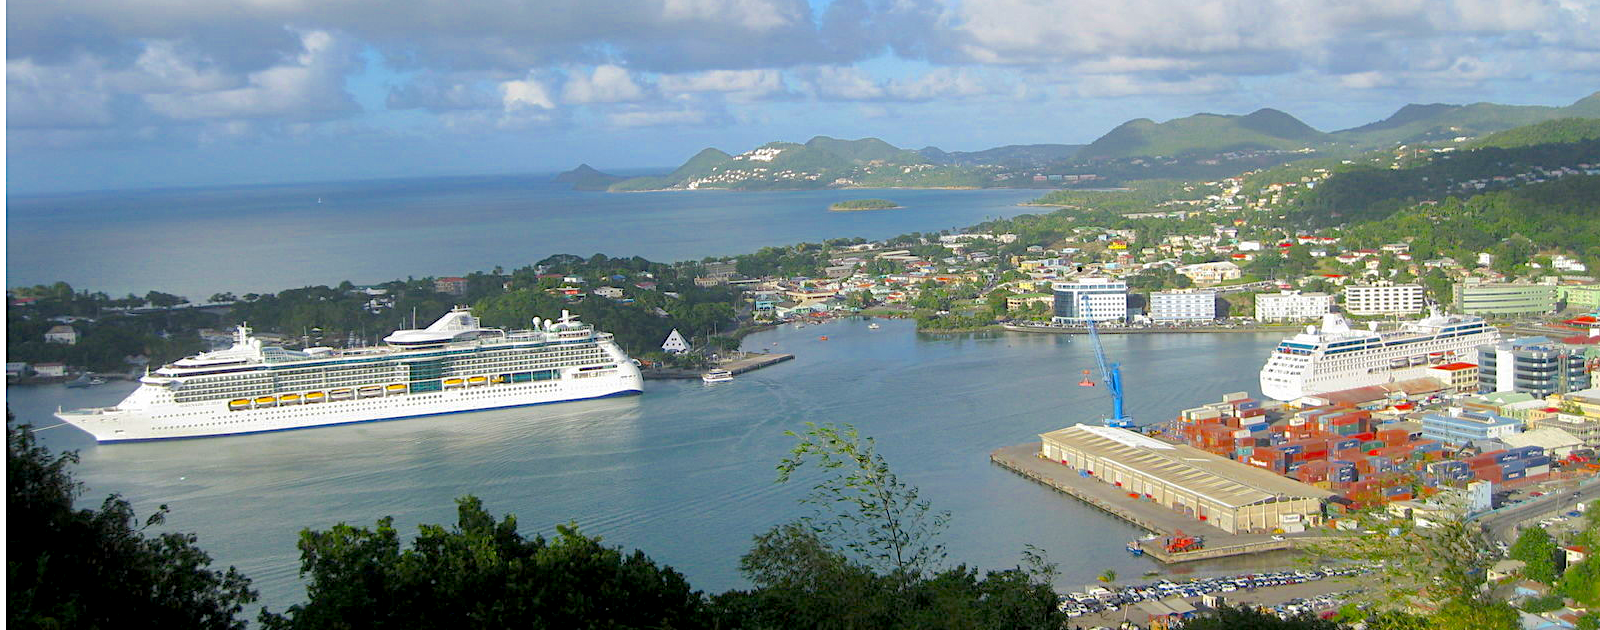 Castries Harbour from Government House